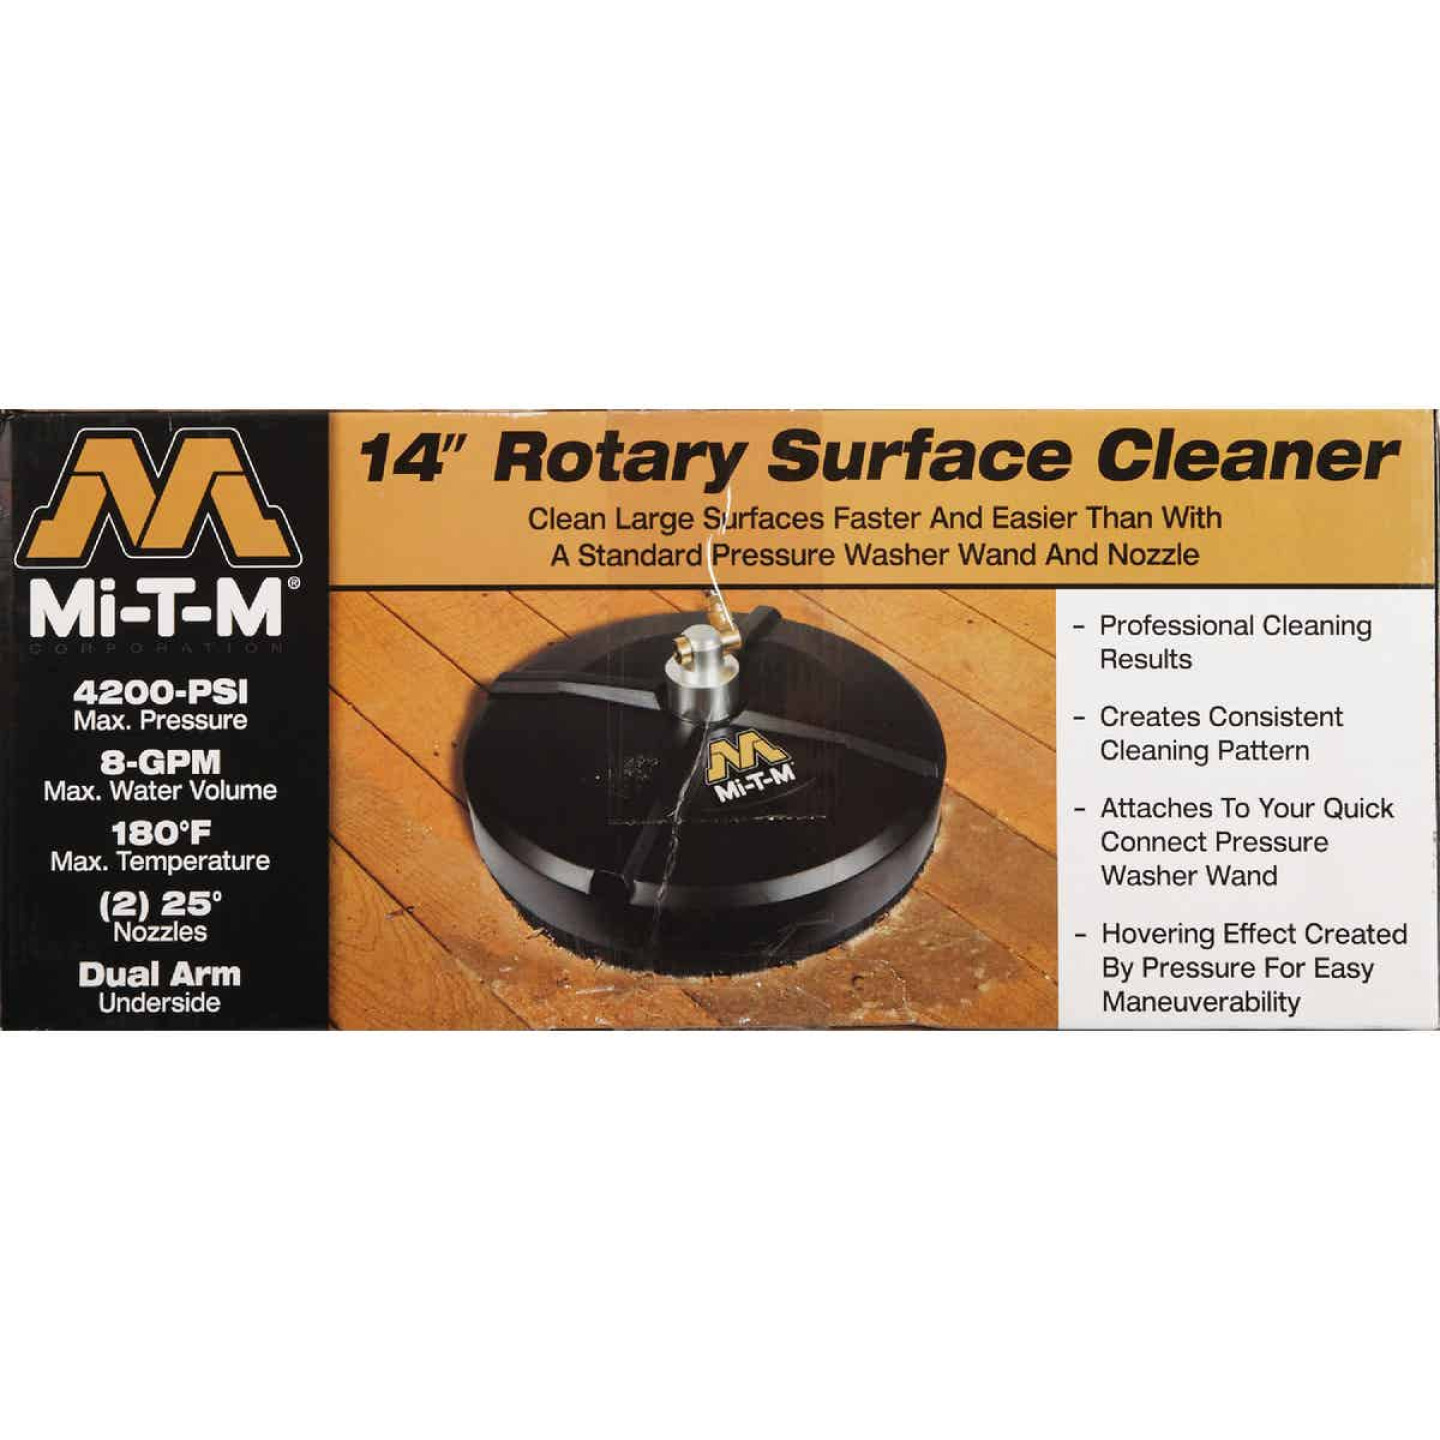 Mi-T-M 14 In. Rotary Surface Cleaner for Gas Pressure Washer with Quick Connect Plug Image 2